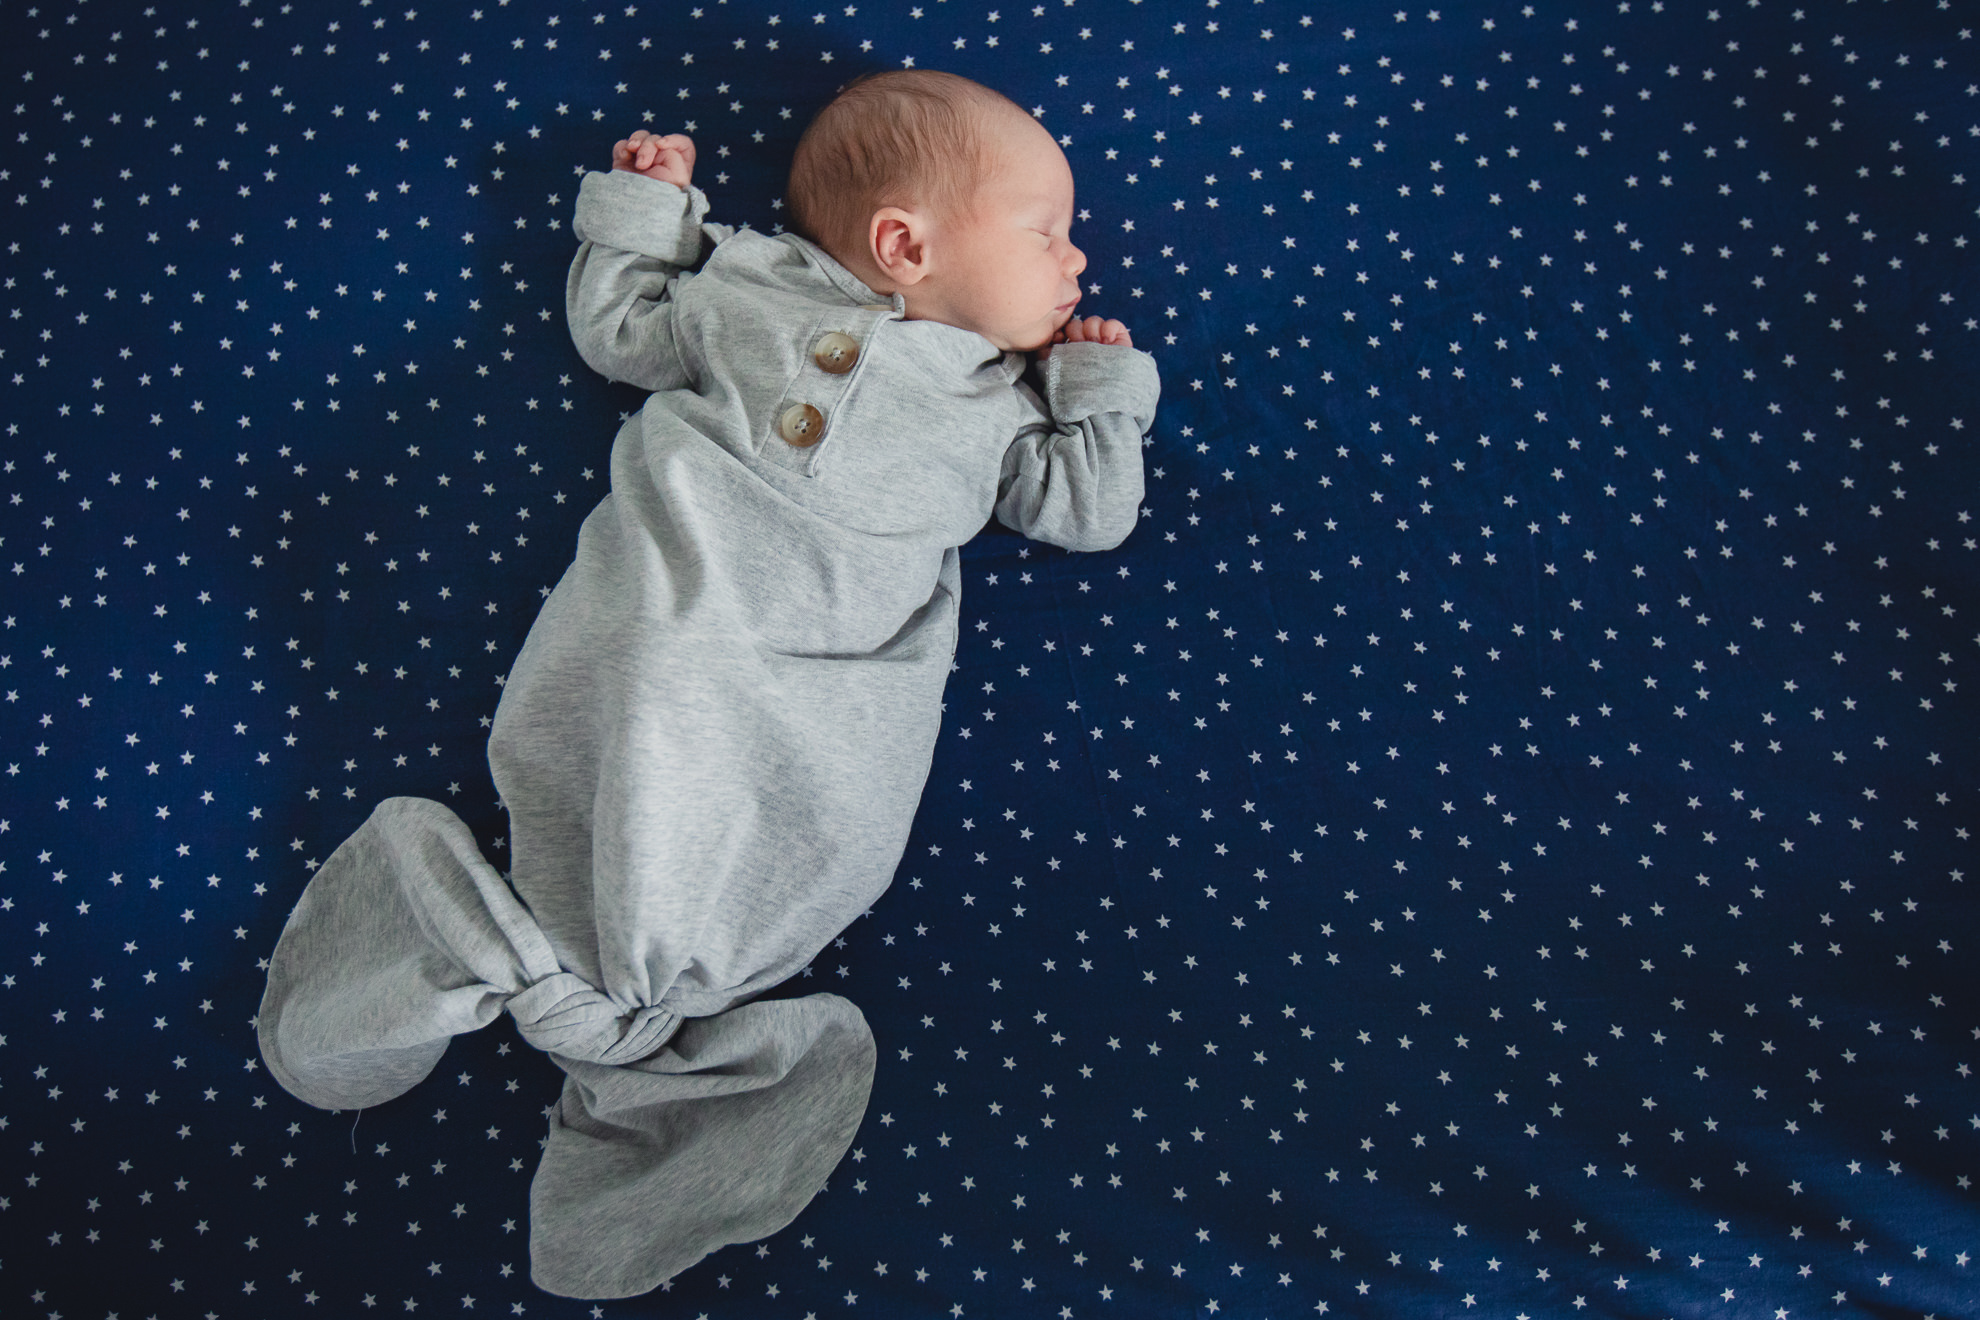 baby lies on star backdrop during newborn baby family photography session in Buffalo, NY